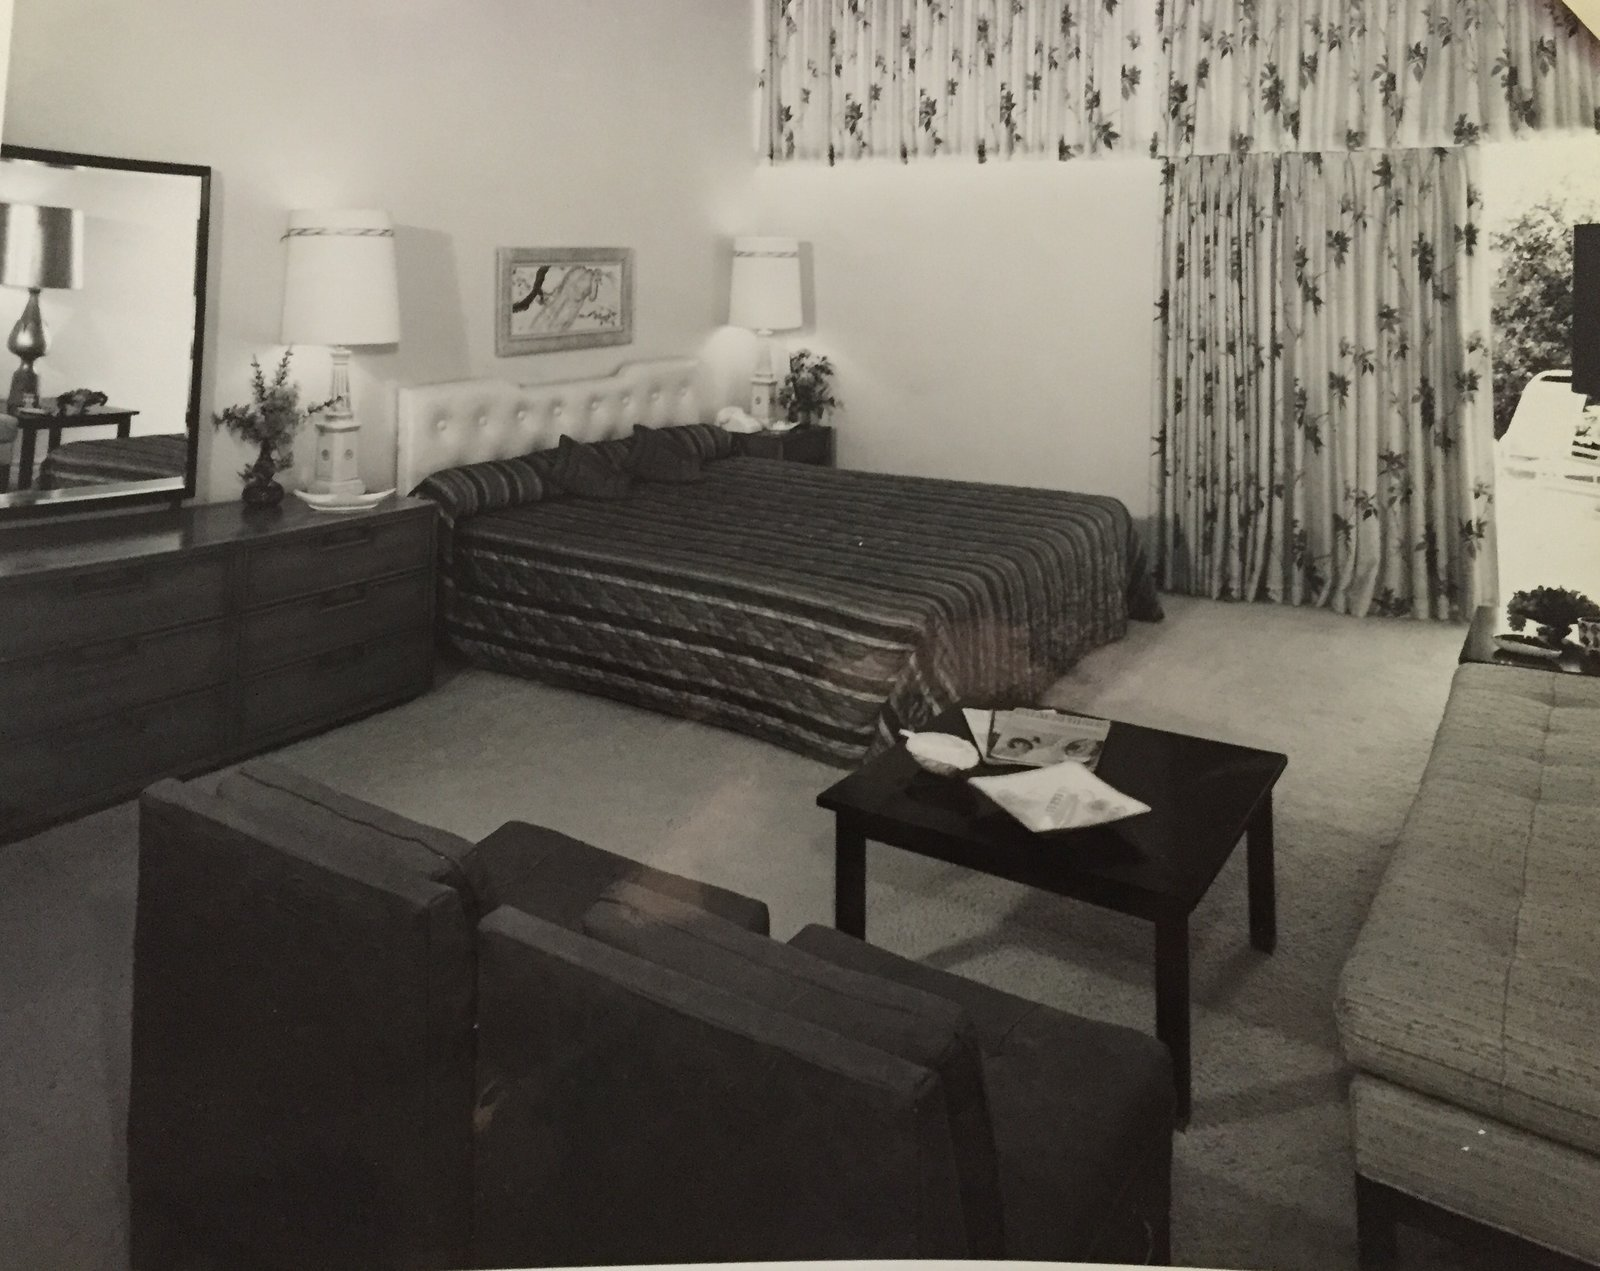 The original Jungle bedroom that inspired it.  Photo 5 of 6 in This Palm Springs Hotel is Filled with Vintage Midcentury Modern Finds